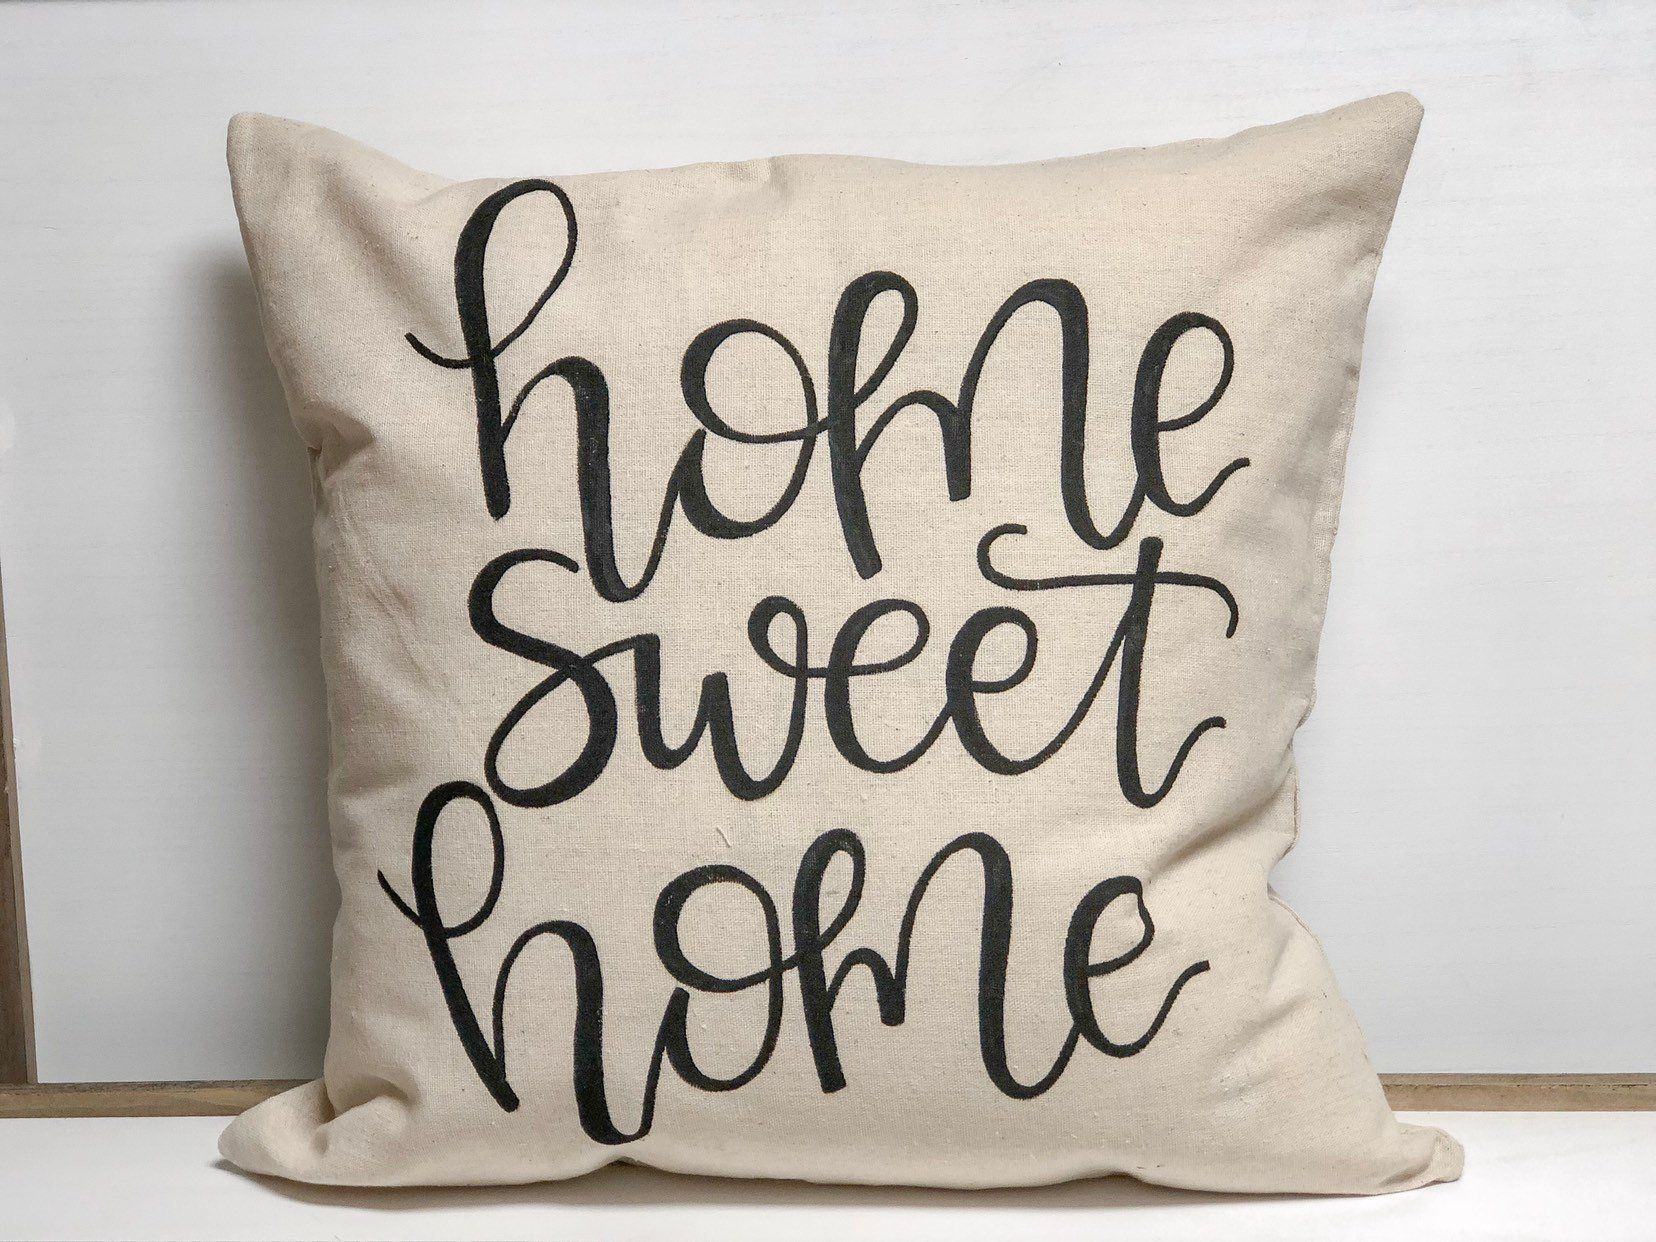 Handpainted Home Sweet Home Pillow Cover, Pillow, Home